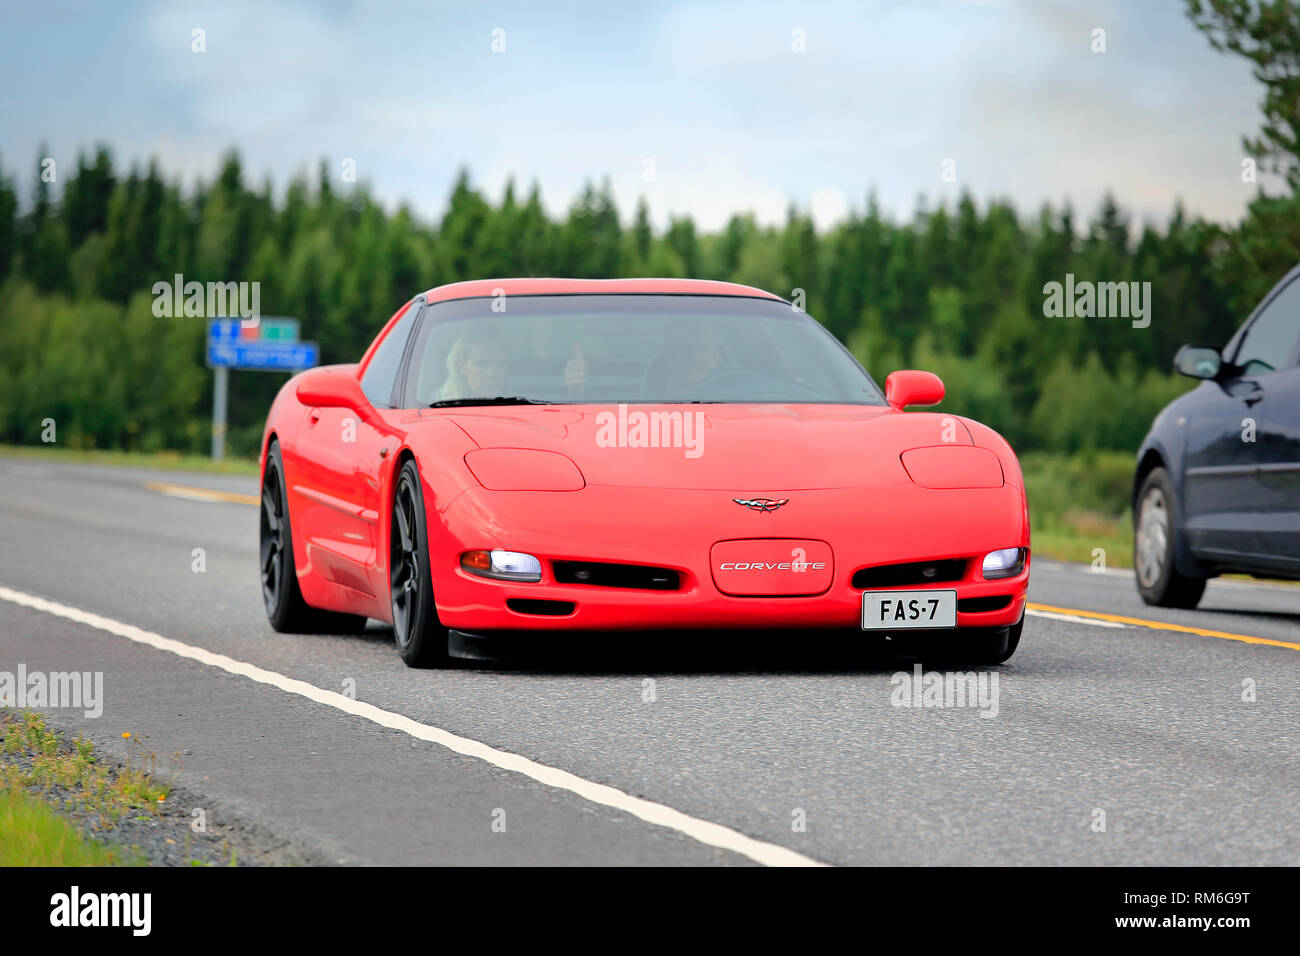 Ikaalinen, Finland - August 12, 2018: Red Chevrolet Corvette sports car cruising along highway on a day of summer. Stock Photo